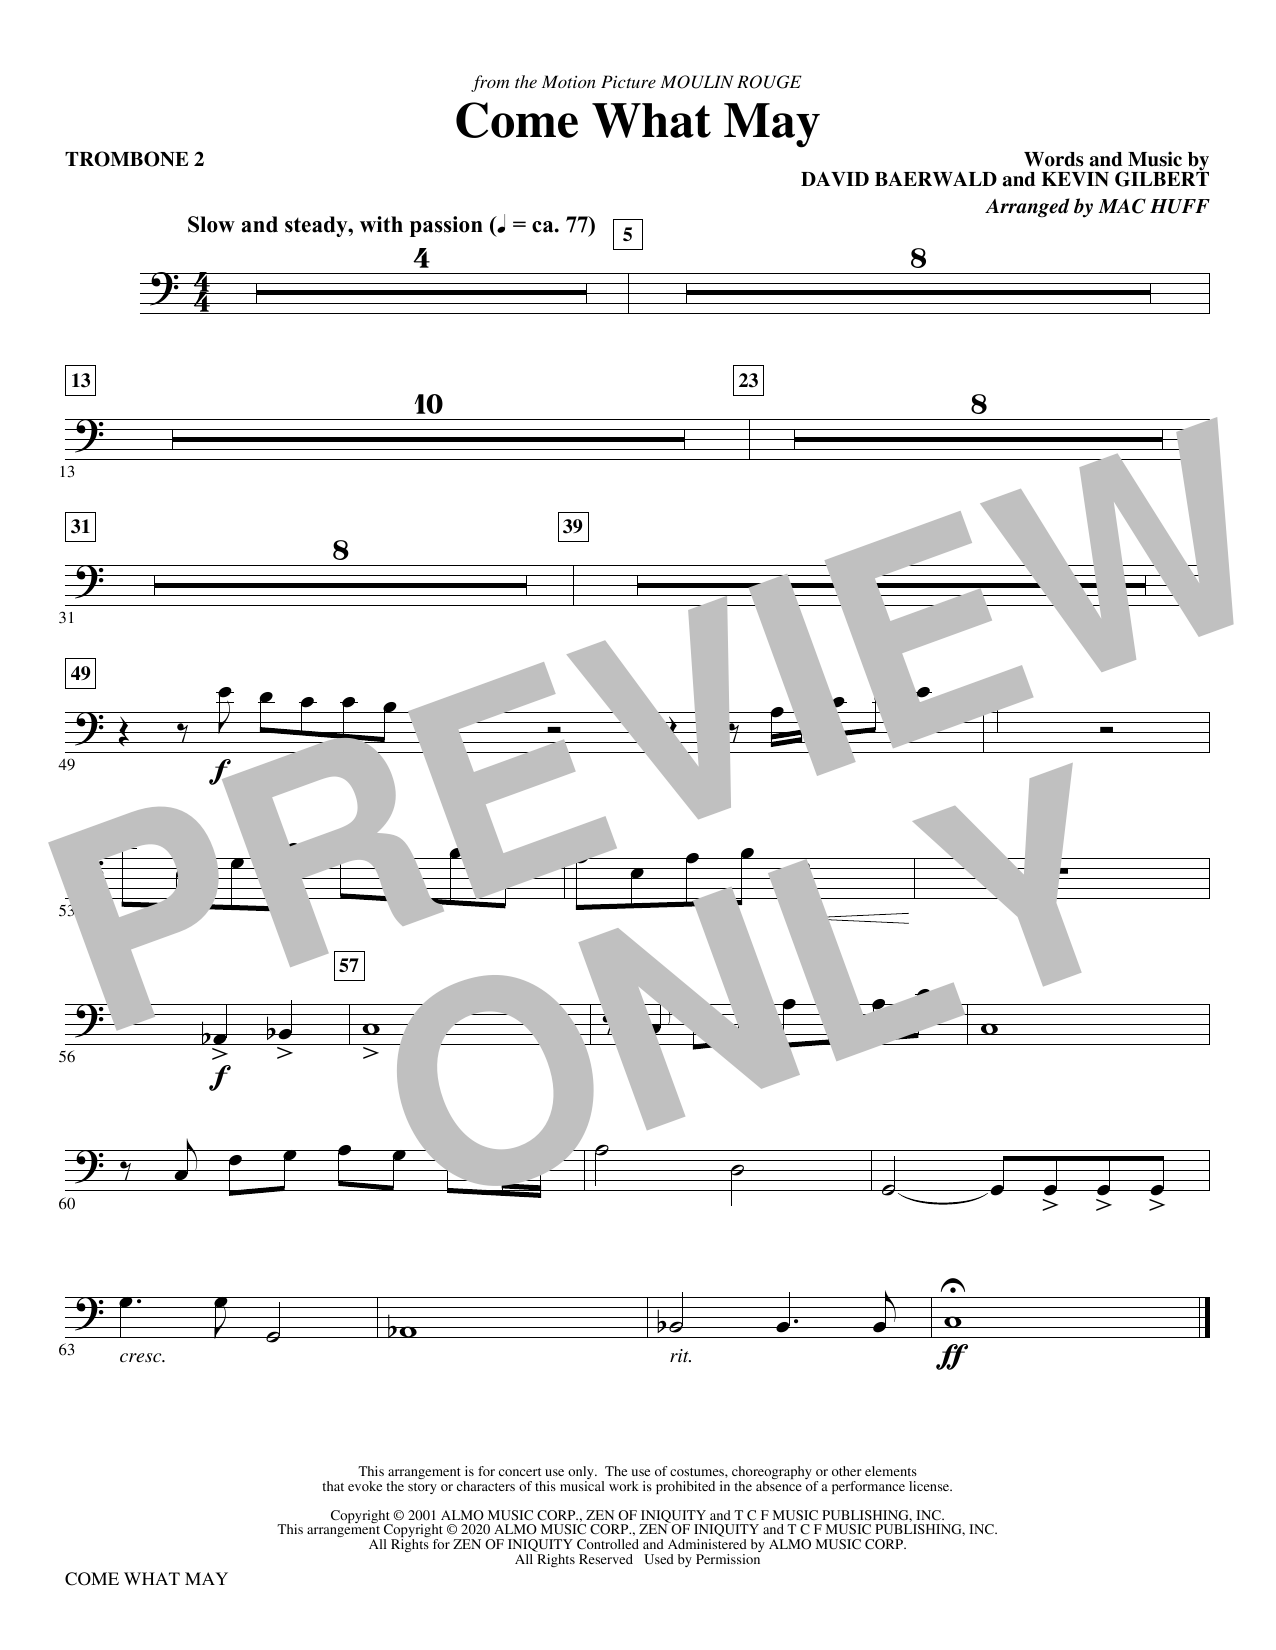 Come What May (from Moulin Rouge) (arr. Mac Huff) - Trombone 2 Sheet Music